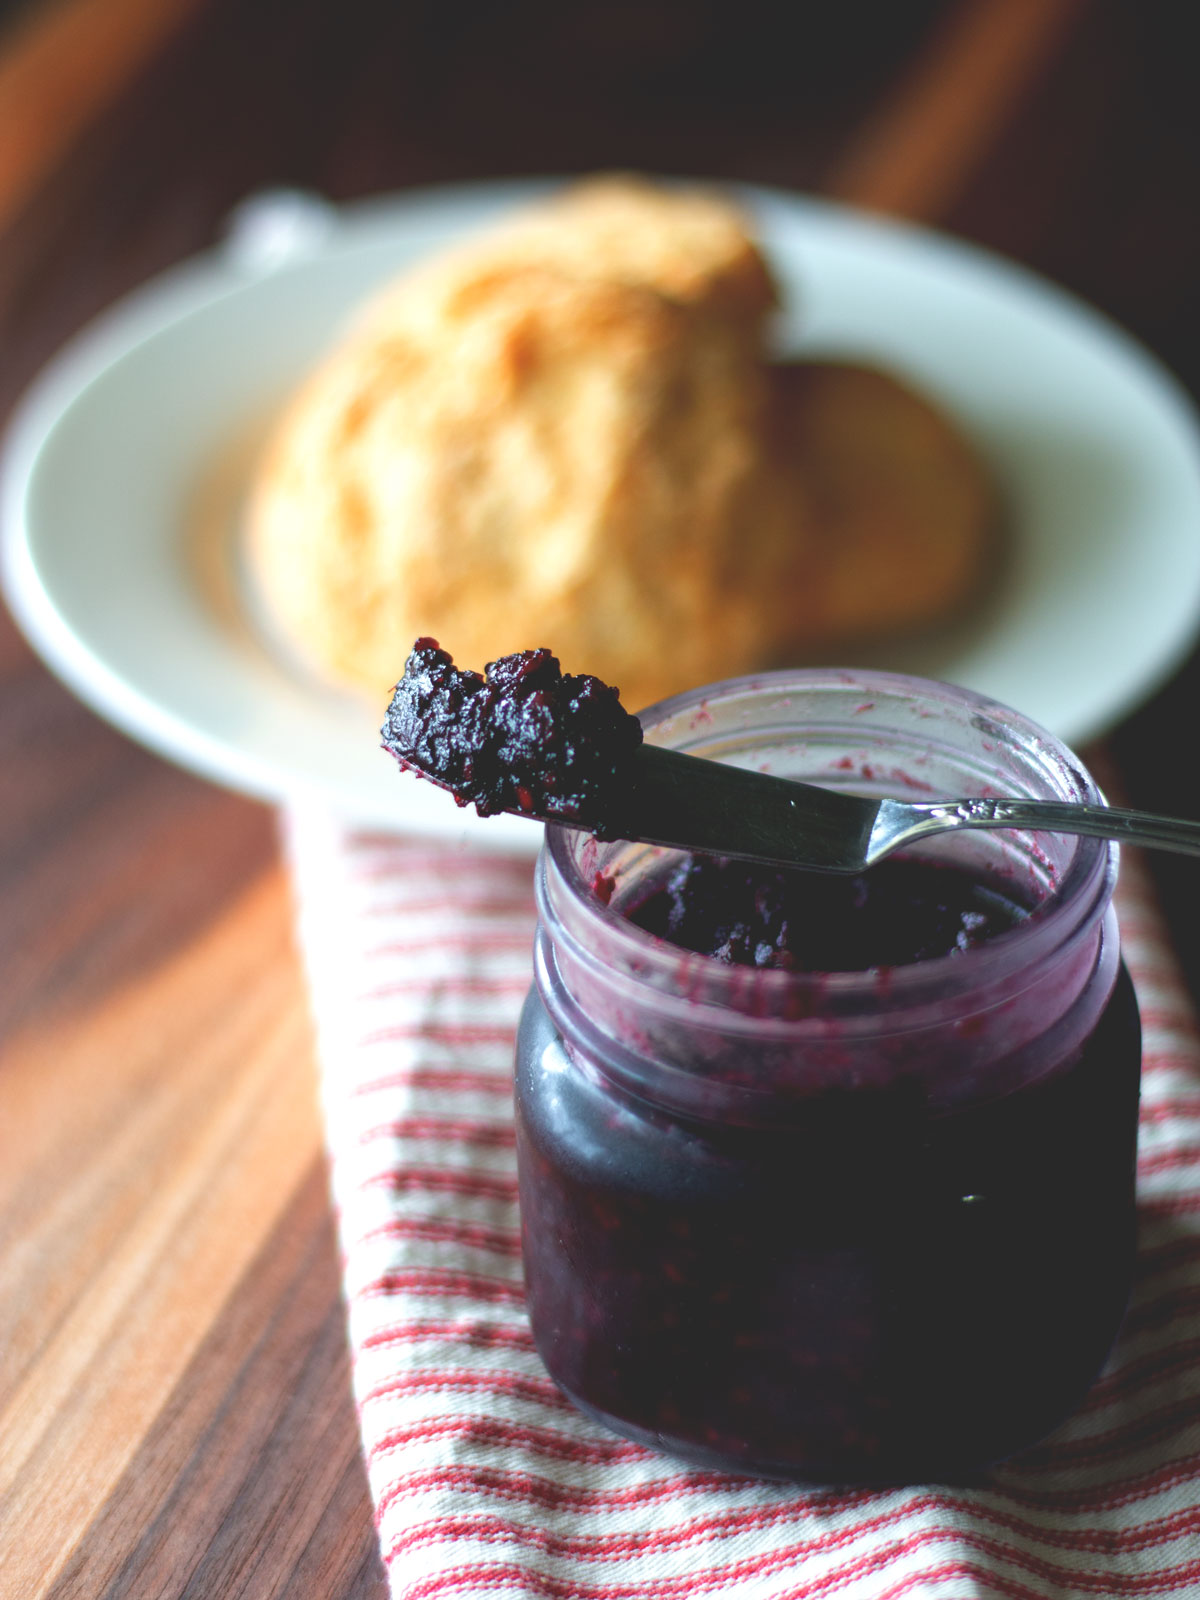 This simple and healthy Blackberry Jam requires no canning skills at all. You can make it in just a few minutes and enjoy homemade jam any time!